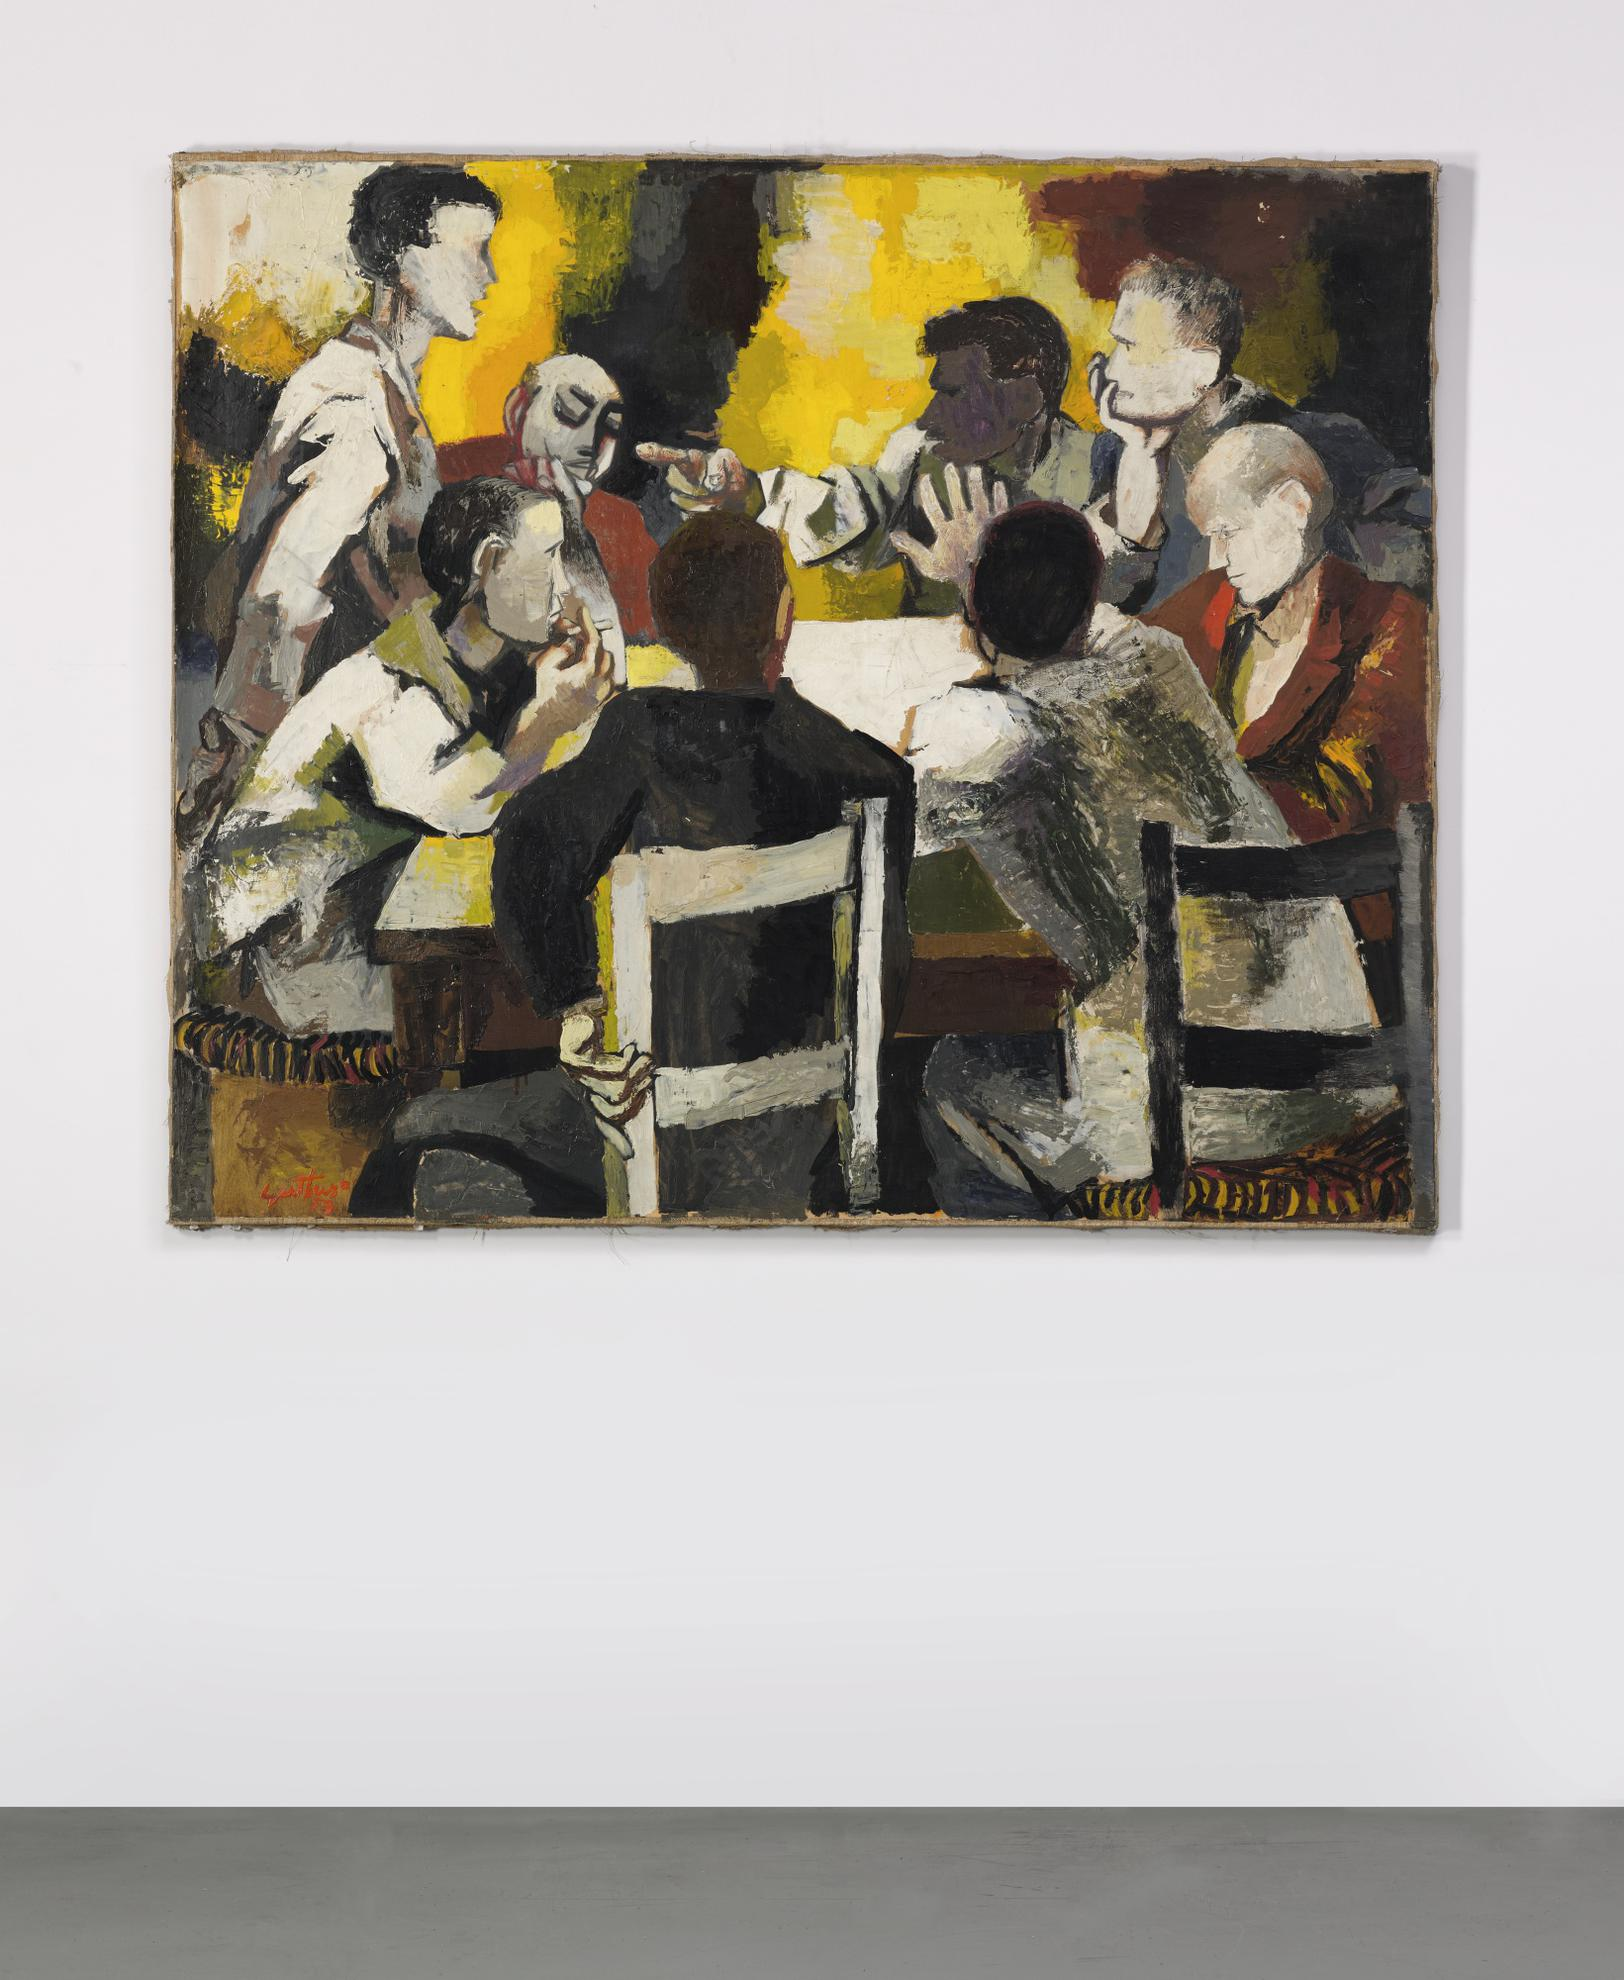 Renato Guttuso-La Discussione-1957